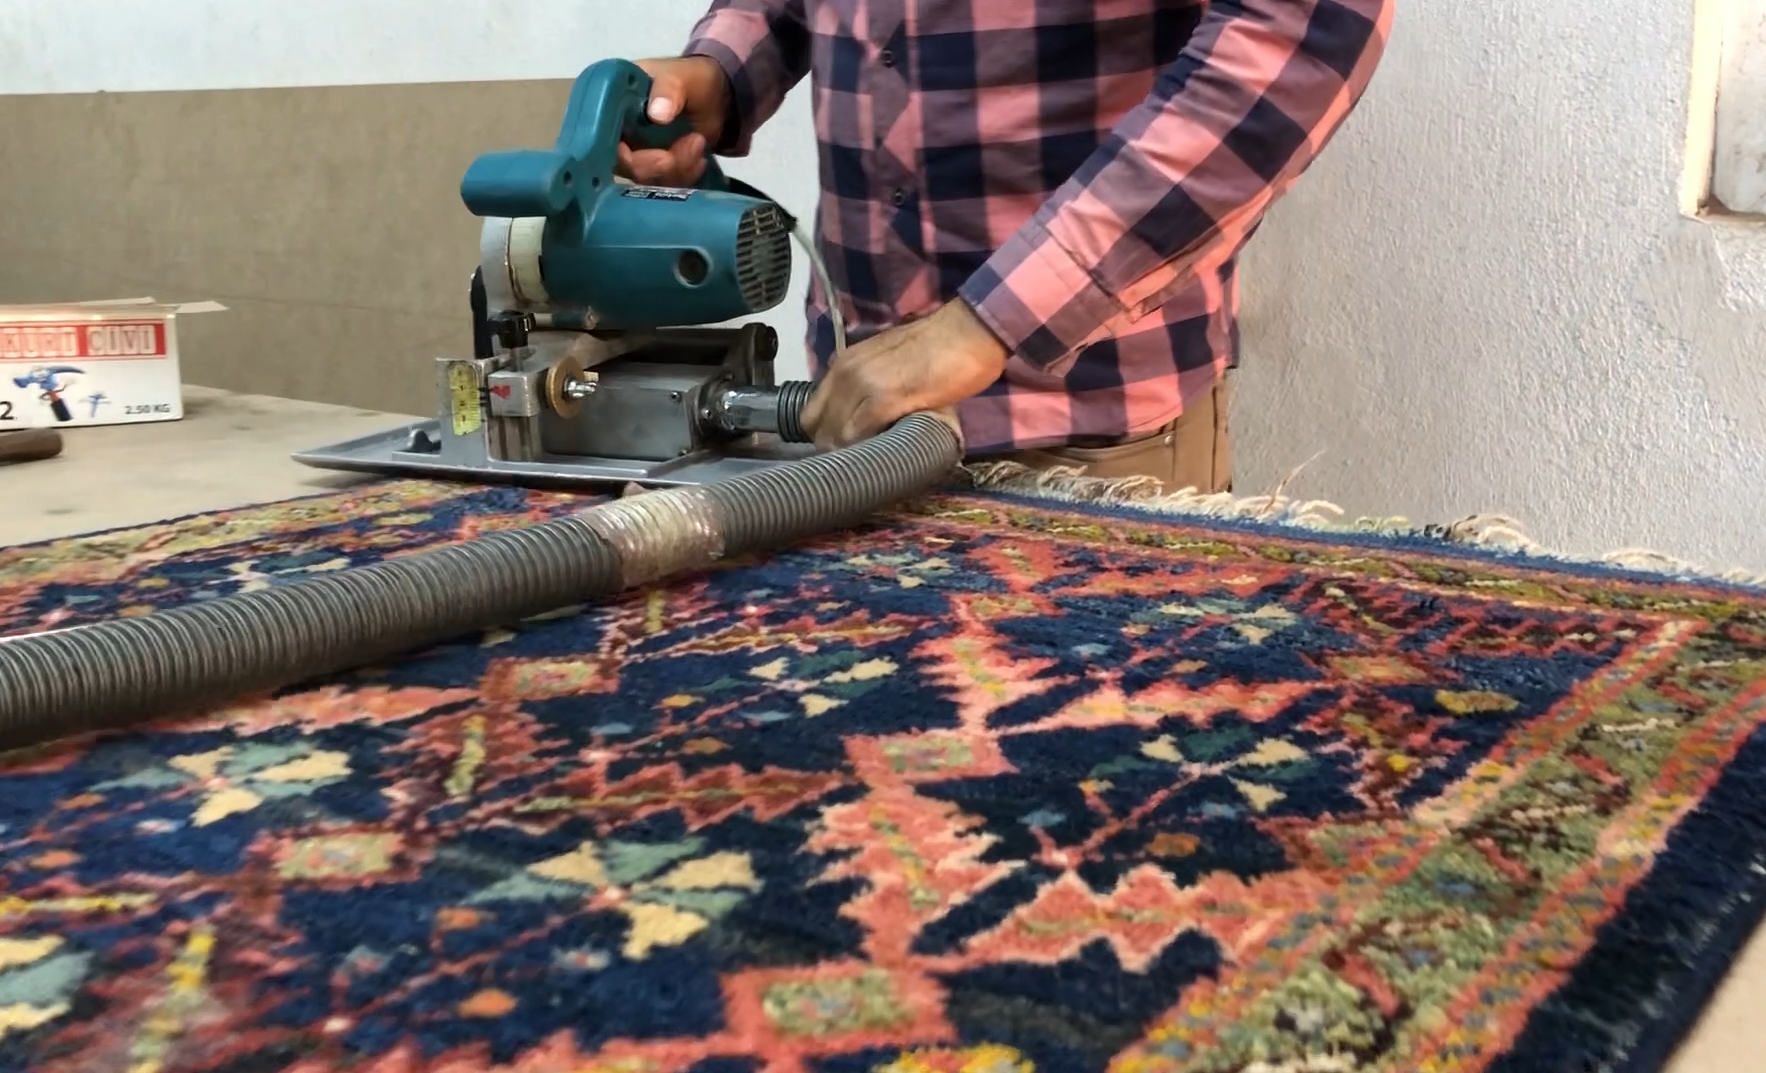 Rug cropping